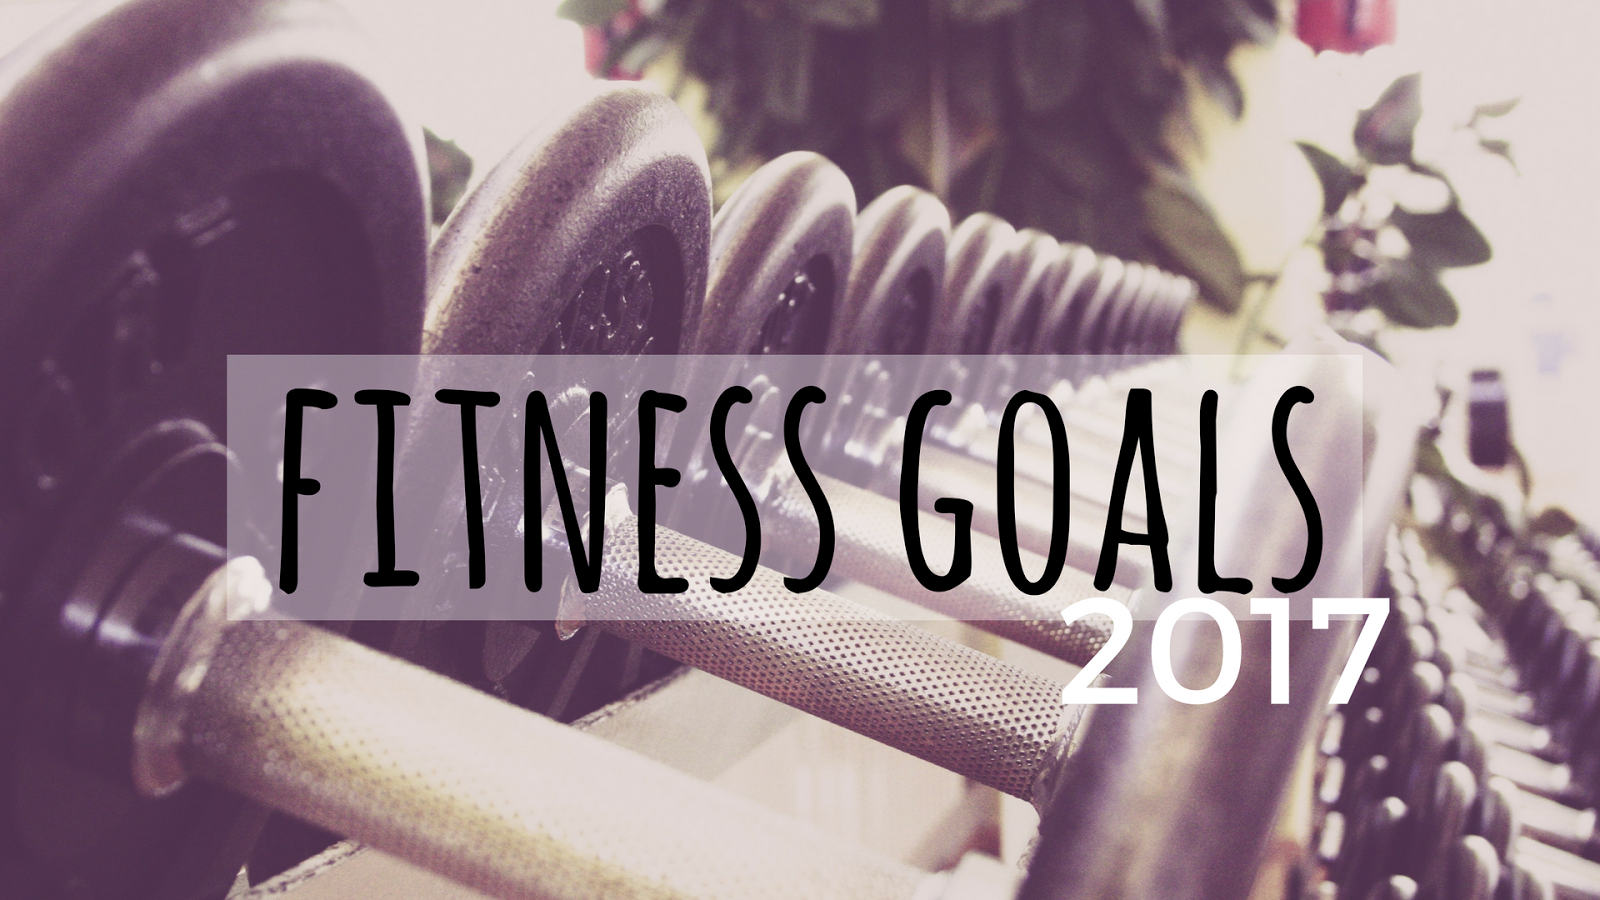 fitness, workout, lifestyle, healthy, exercise, sport, fitbit, goals, new year